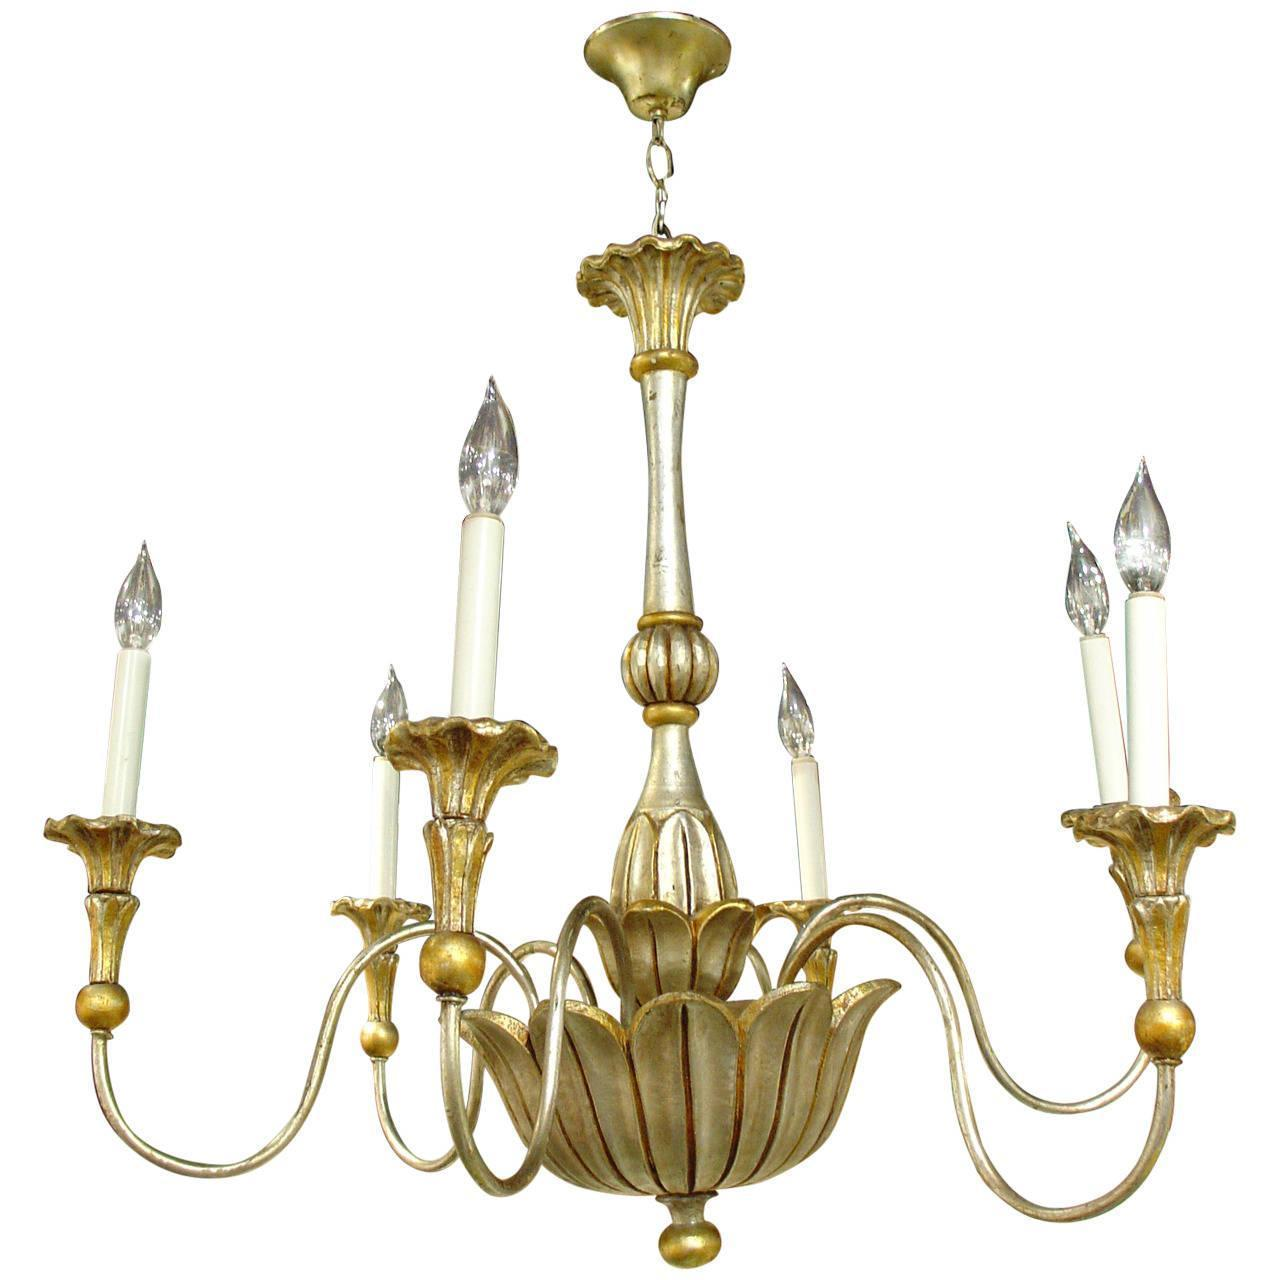 Elegant Six Arm Gold and Silver Gilded Chandelier from France, 20th Century